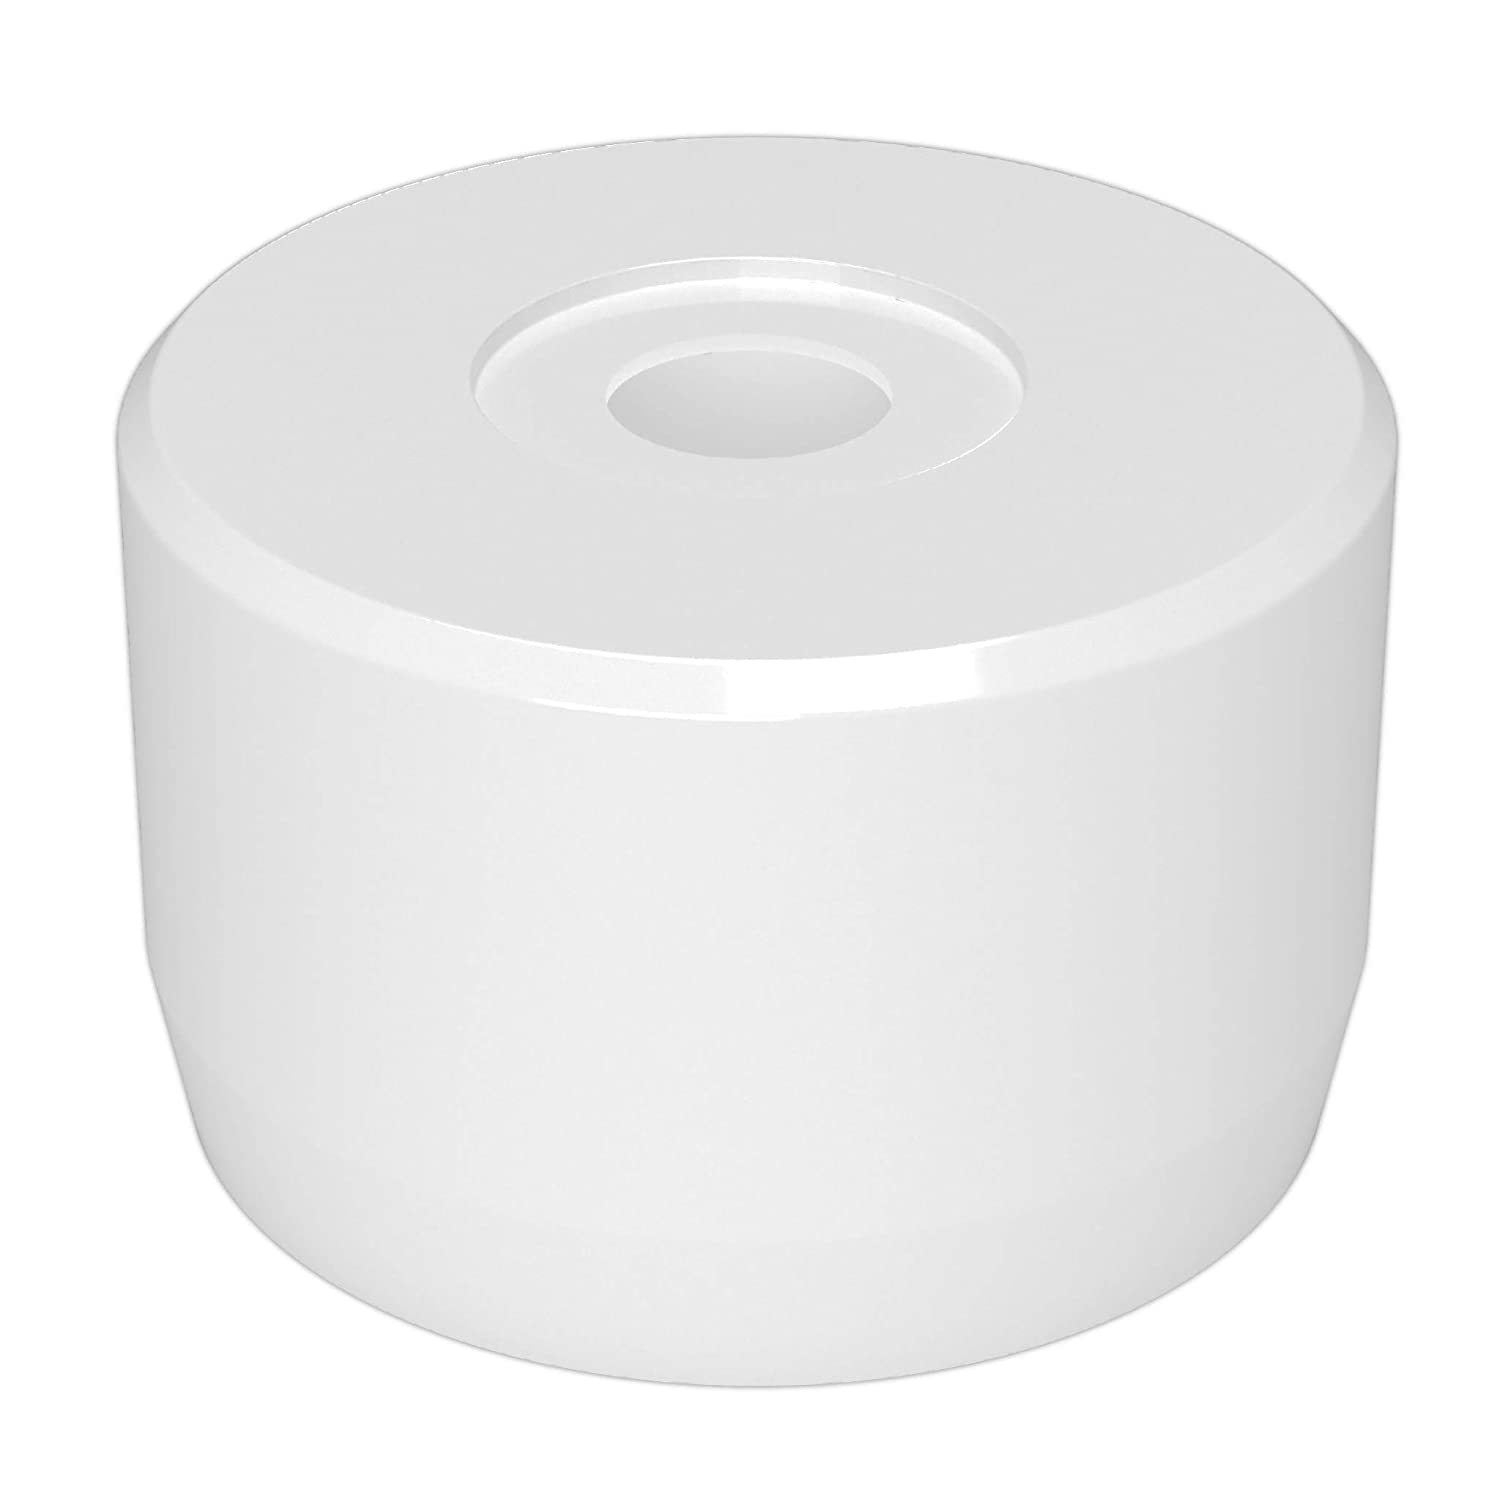 FORMUFIT F114CP7-WH-4 PVC Caster Pipe Max 67% OFF Cheap mail order specialty store 1-1 Furniture Cap Grade